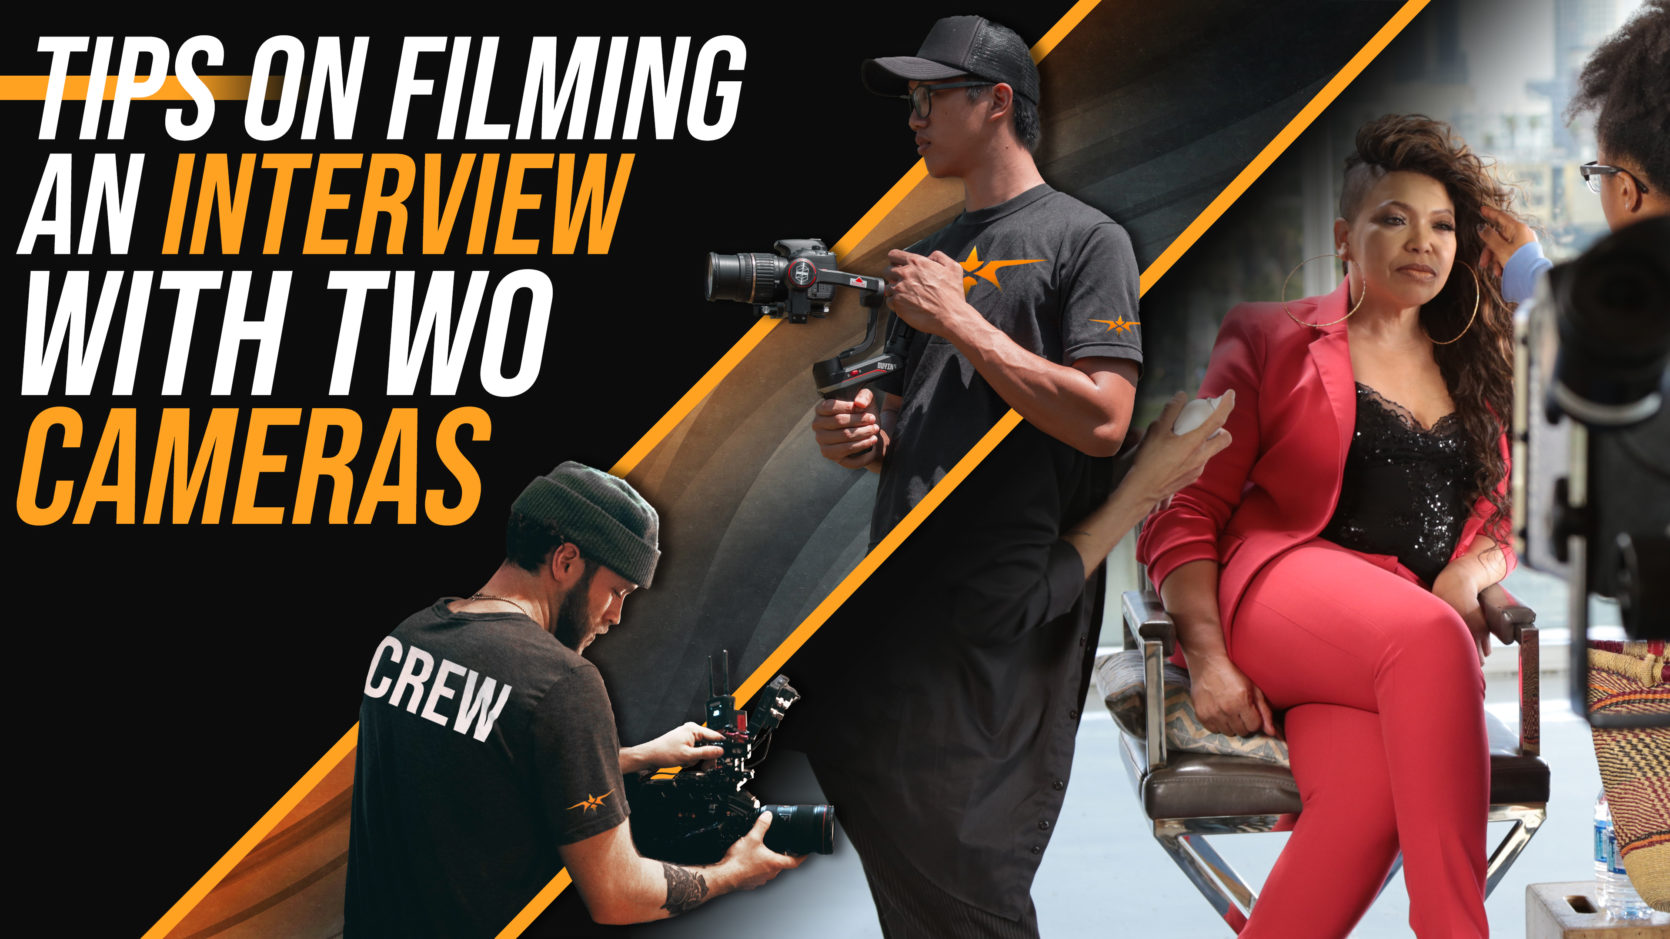 Tips on Filming an Interview with Two Cameras